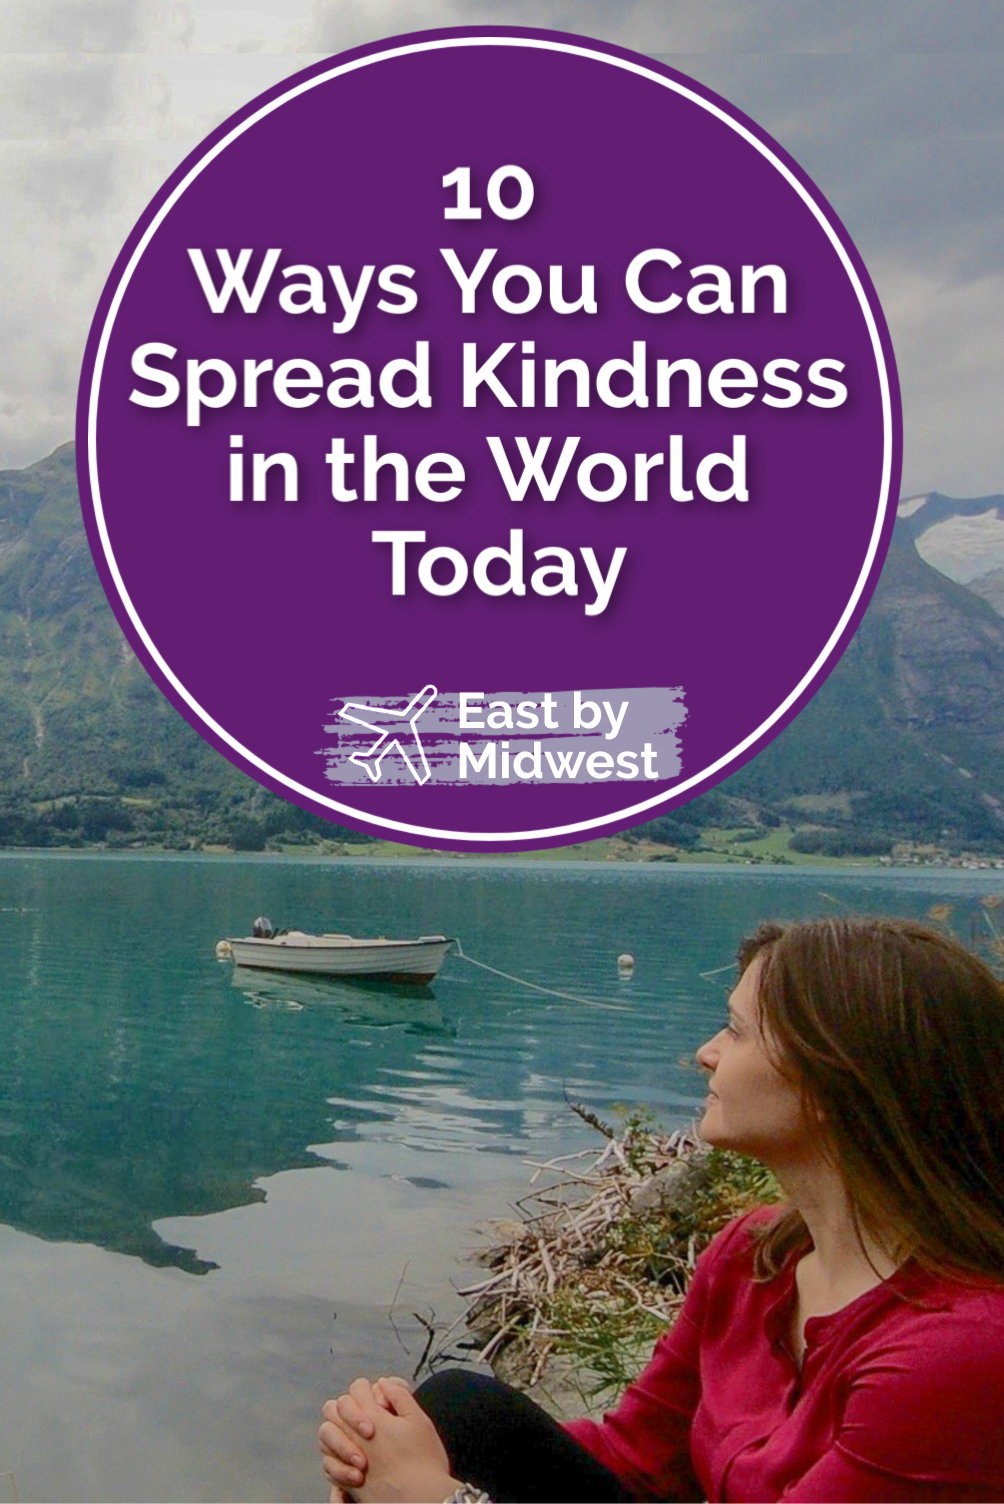 10 Ways You Can Spread Kindness in the World Today